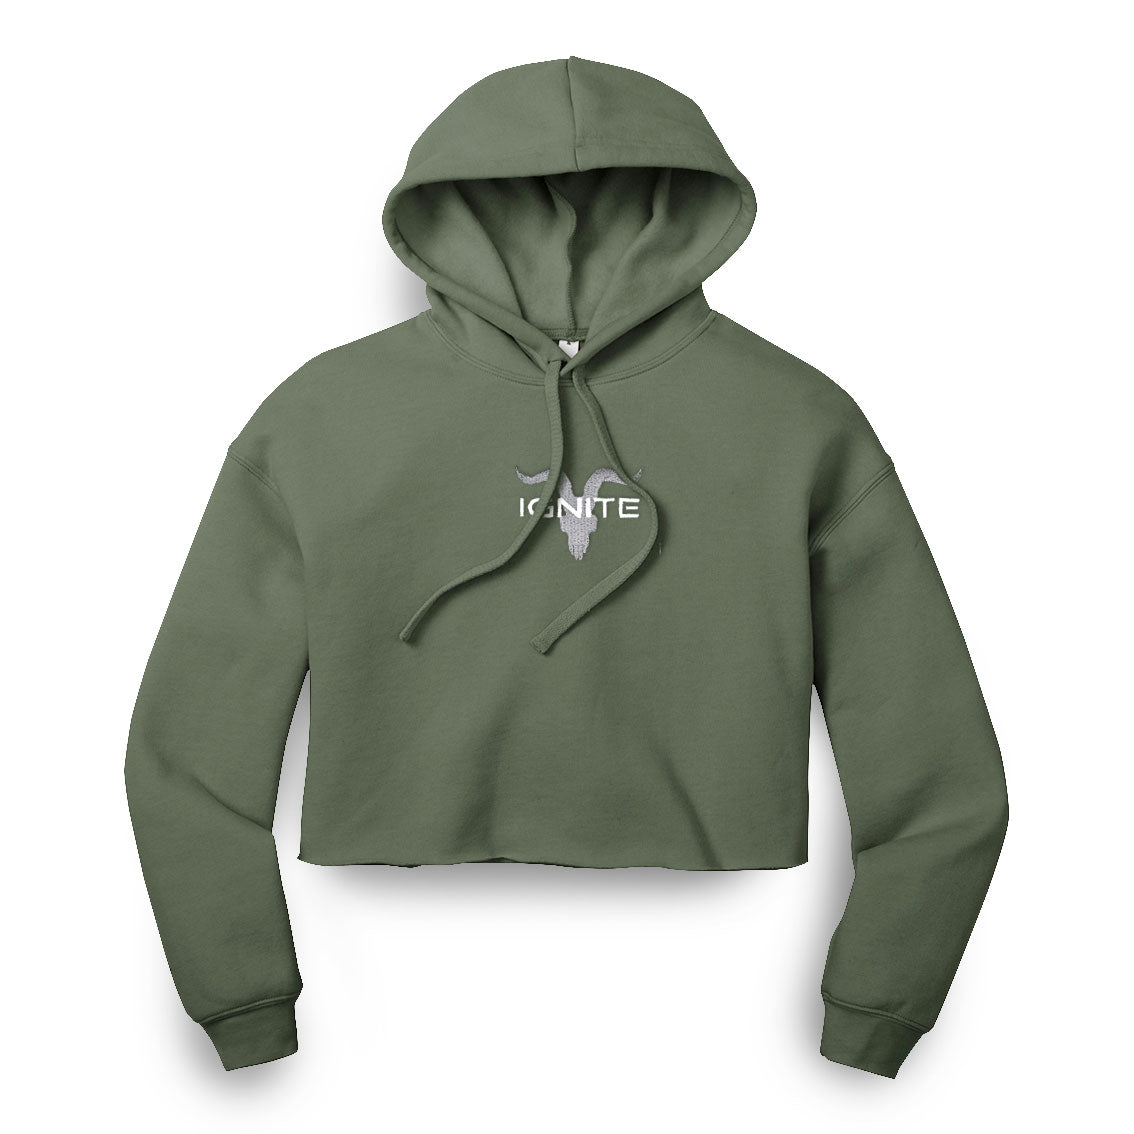 Ignite Premium Collection Ladies Military Green Cropped Hoodie